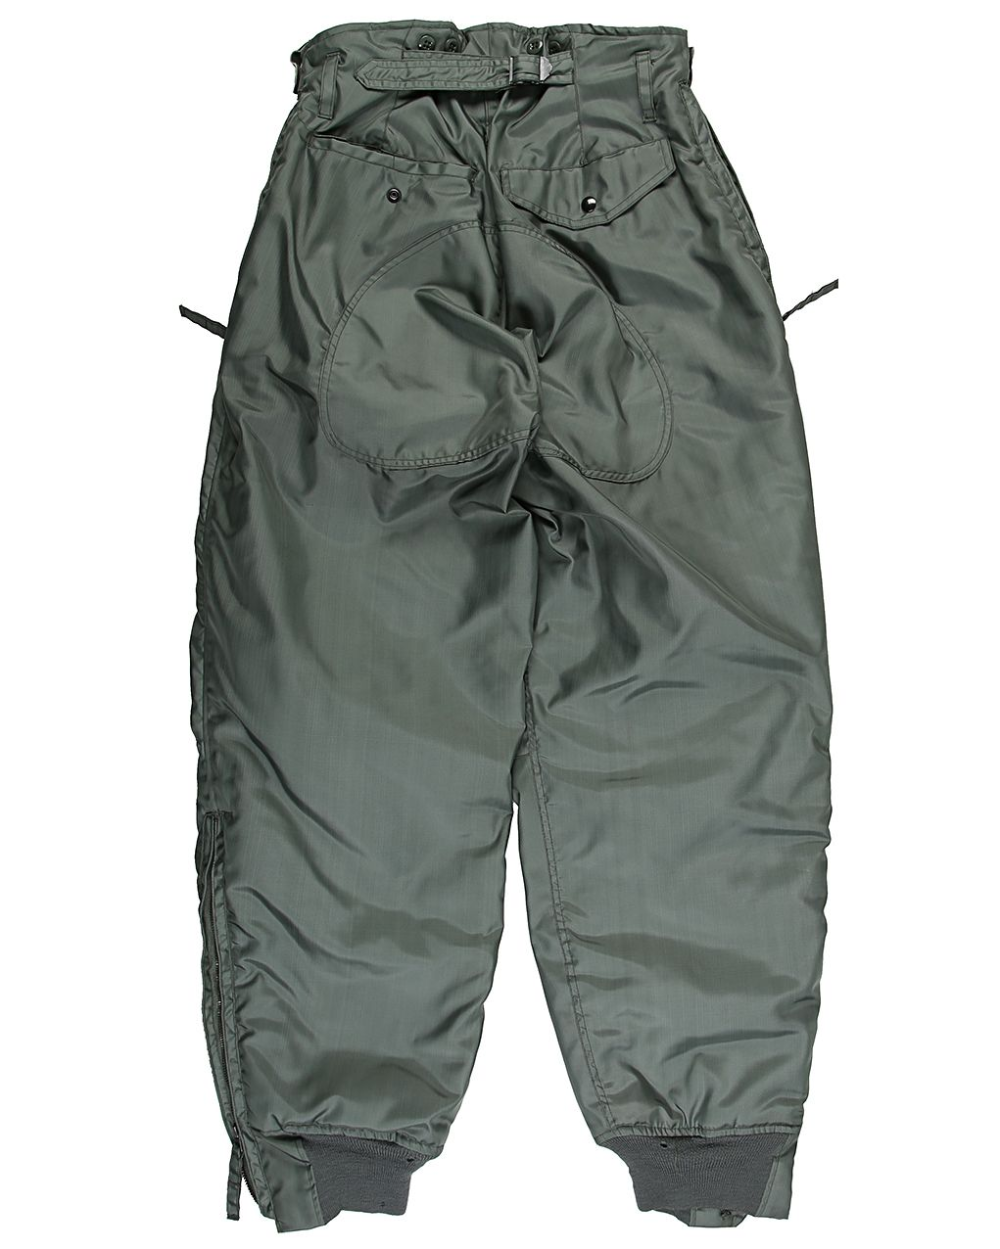 1979 US Airforce CWU Extreme Cold Flying Trousers S